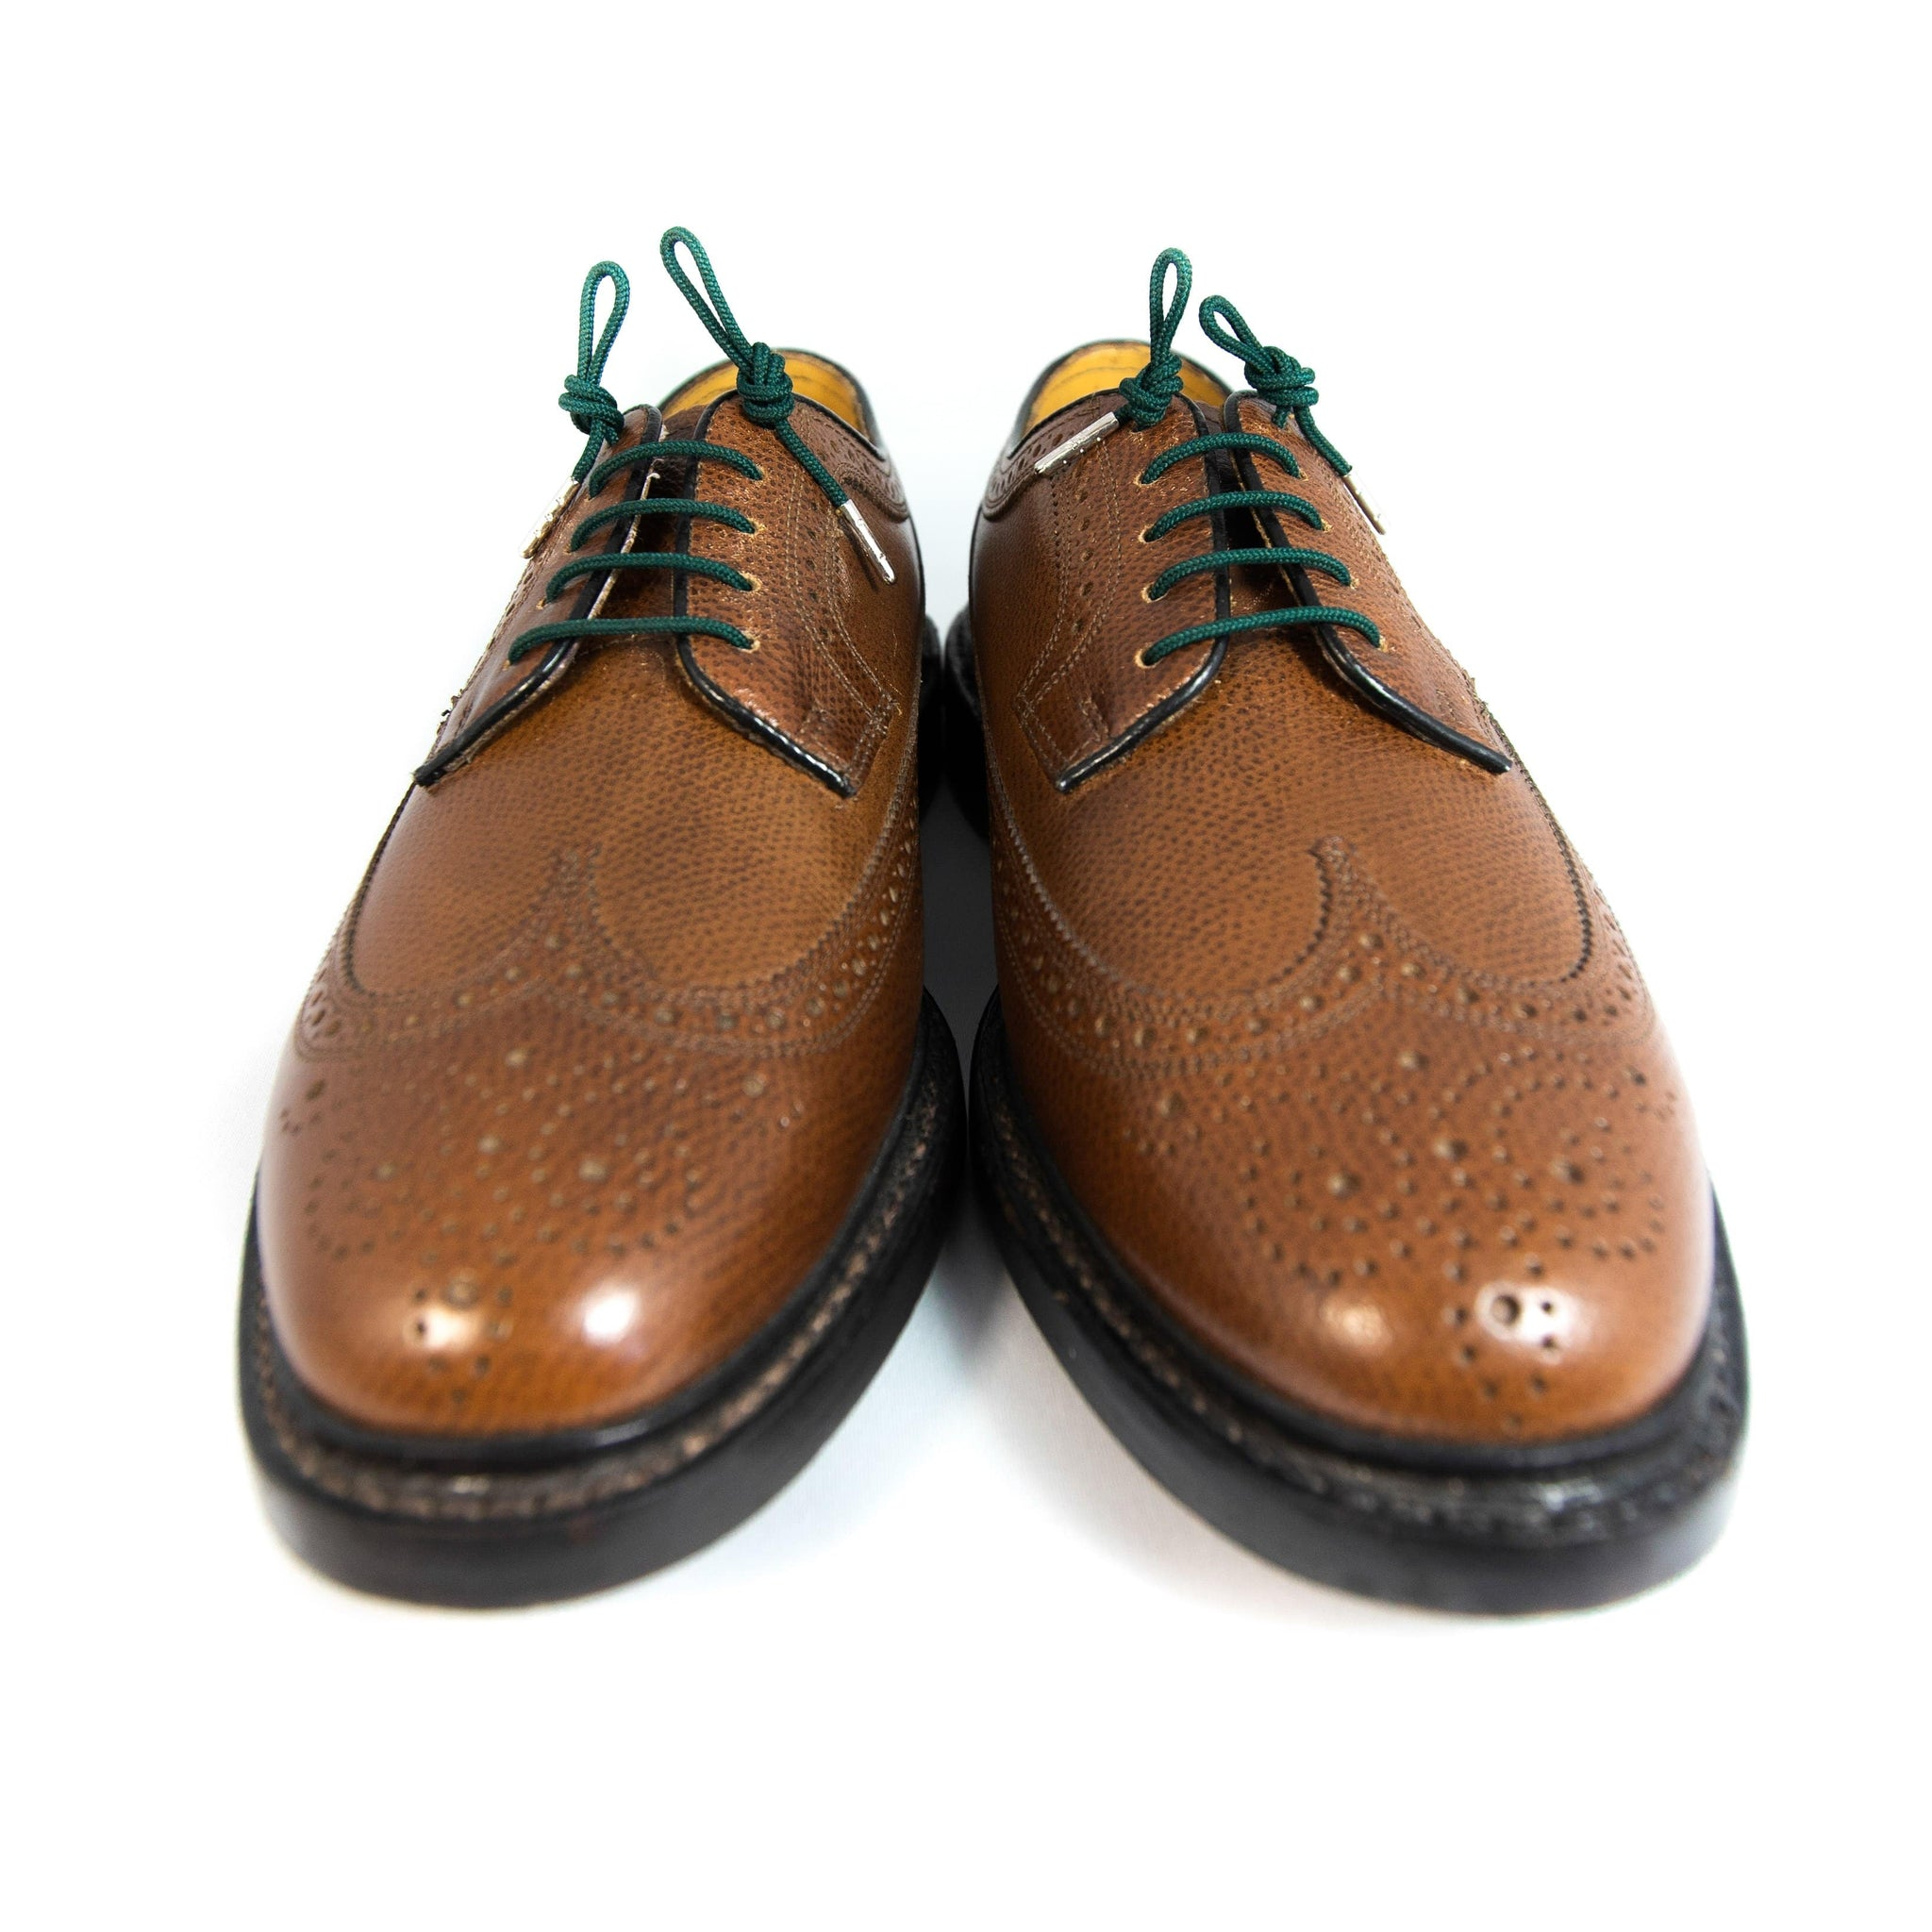 "Forest green laces for dress shoes, Length: 32""/81cm-Stolen Riches"